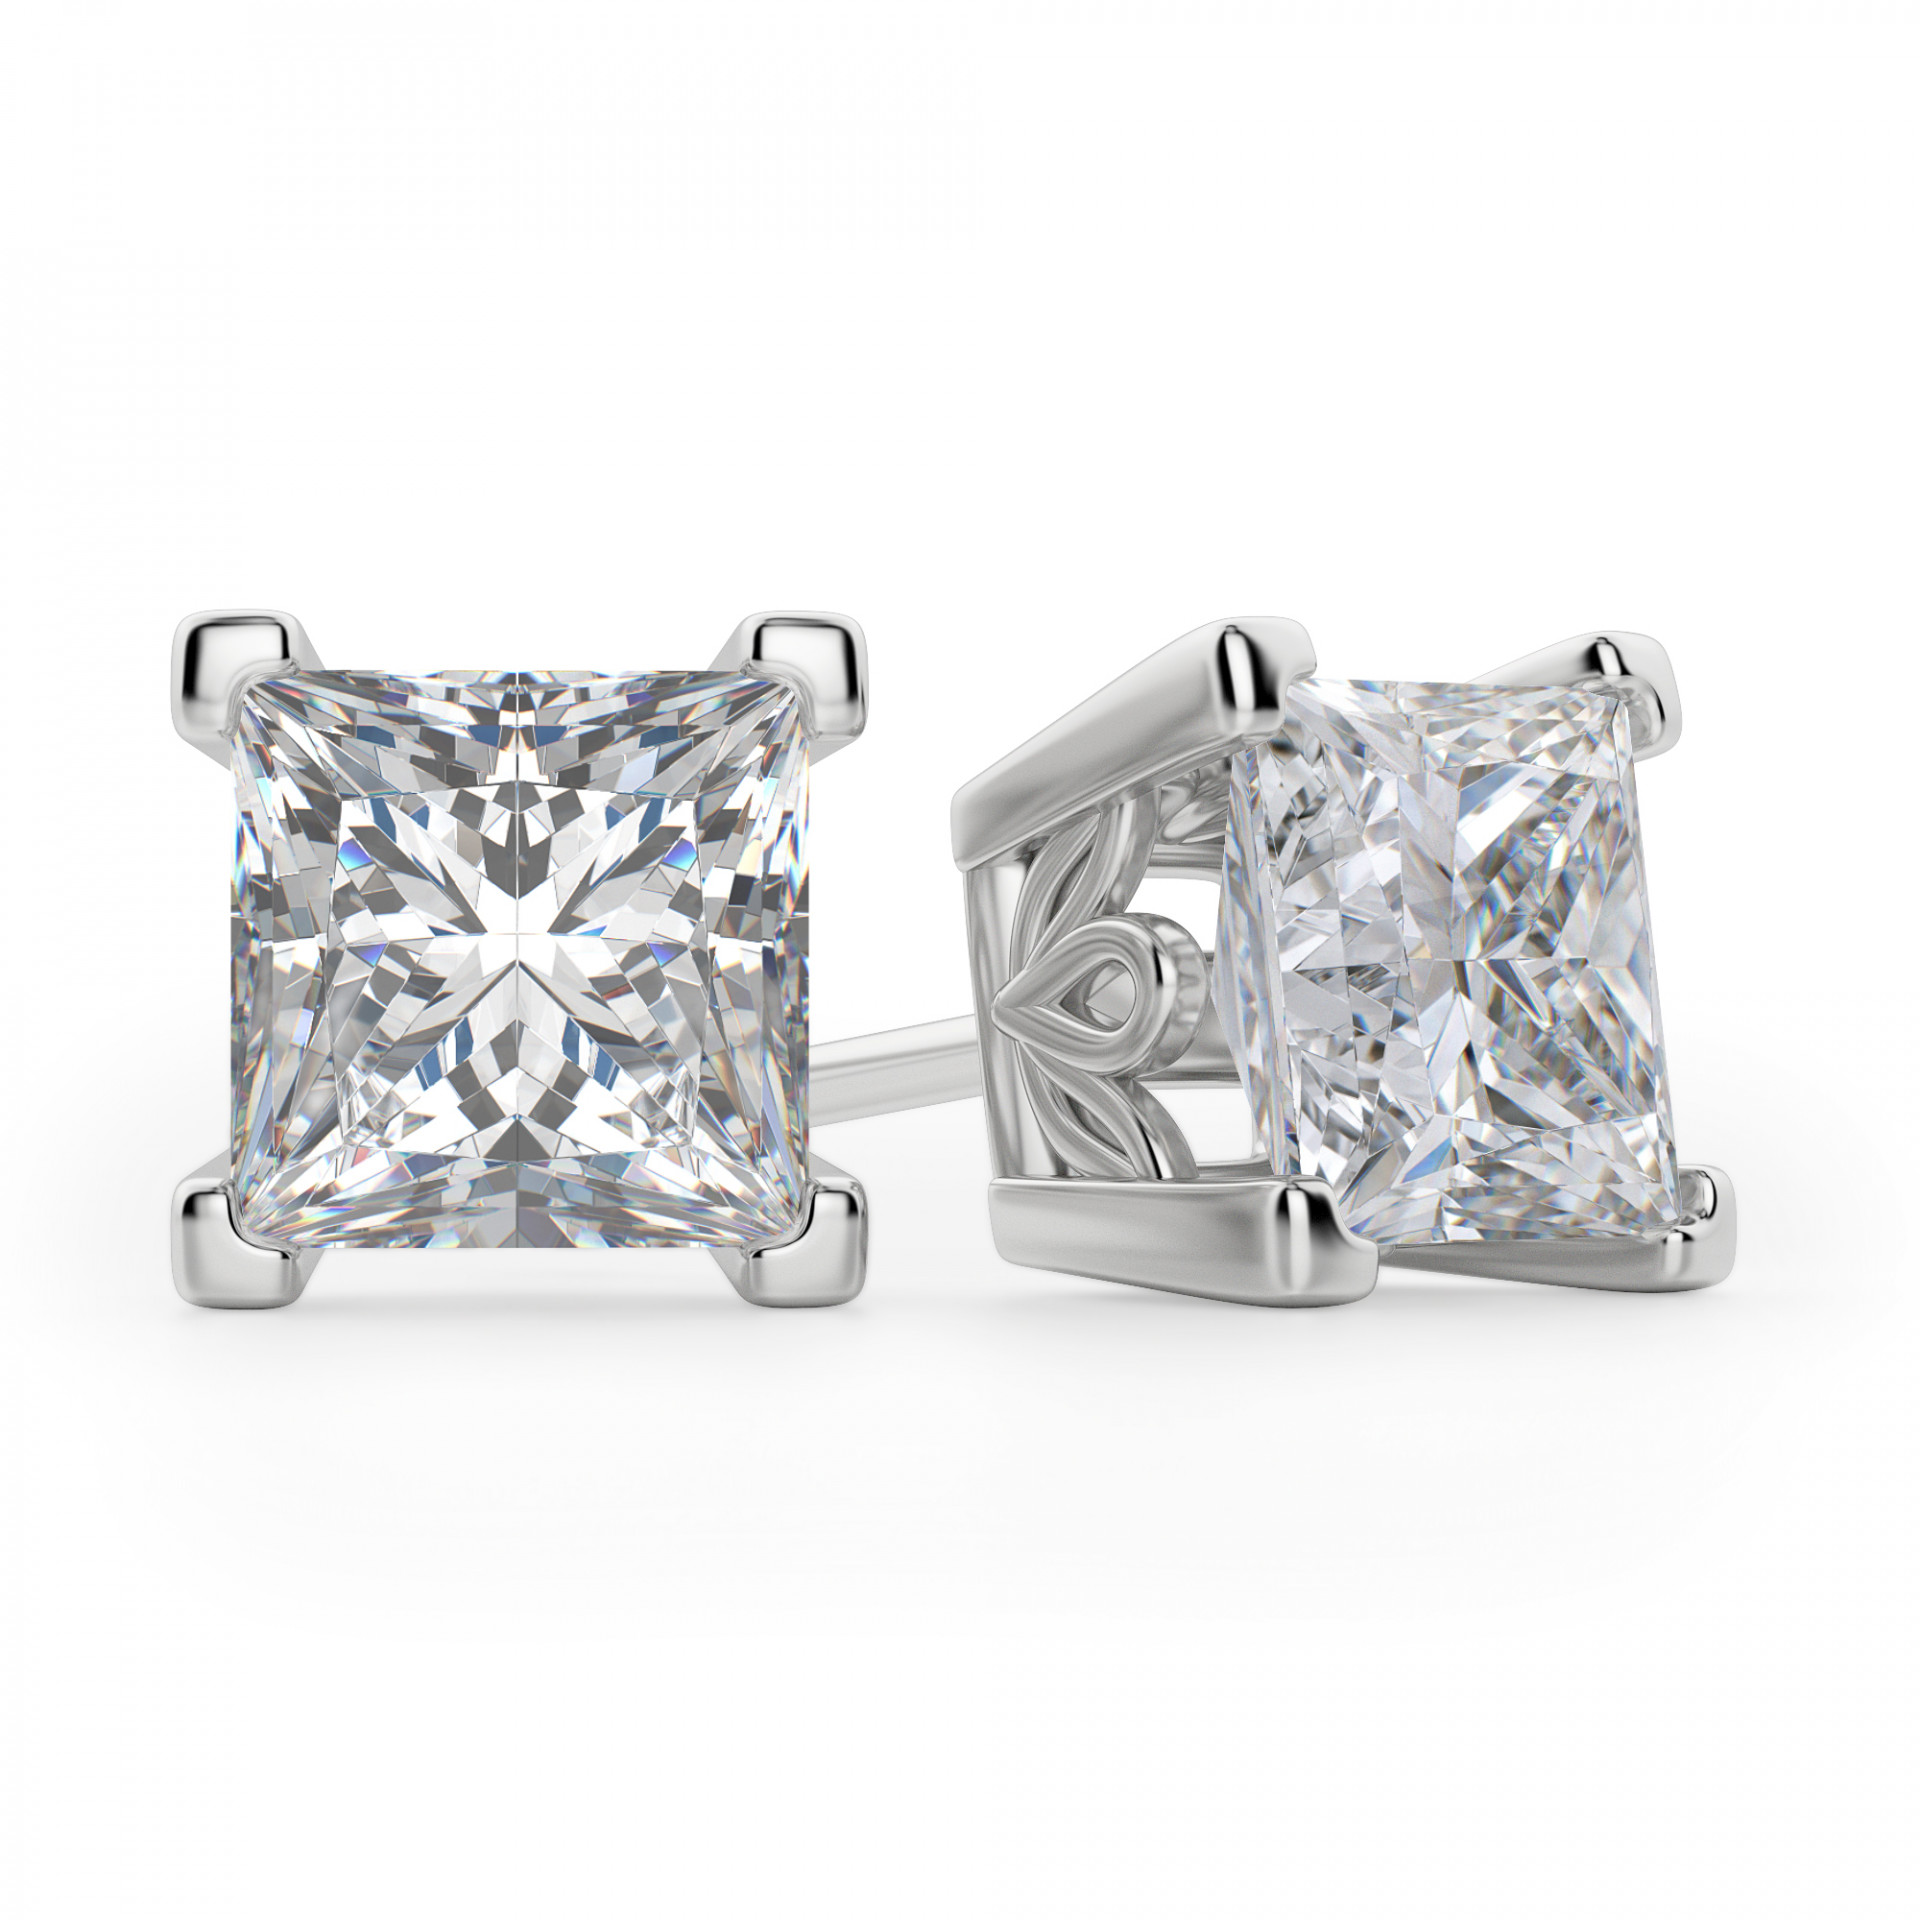 5c72f04339f23 Princess Cut Stud Earrings, Tension Back, Filigree Set